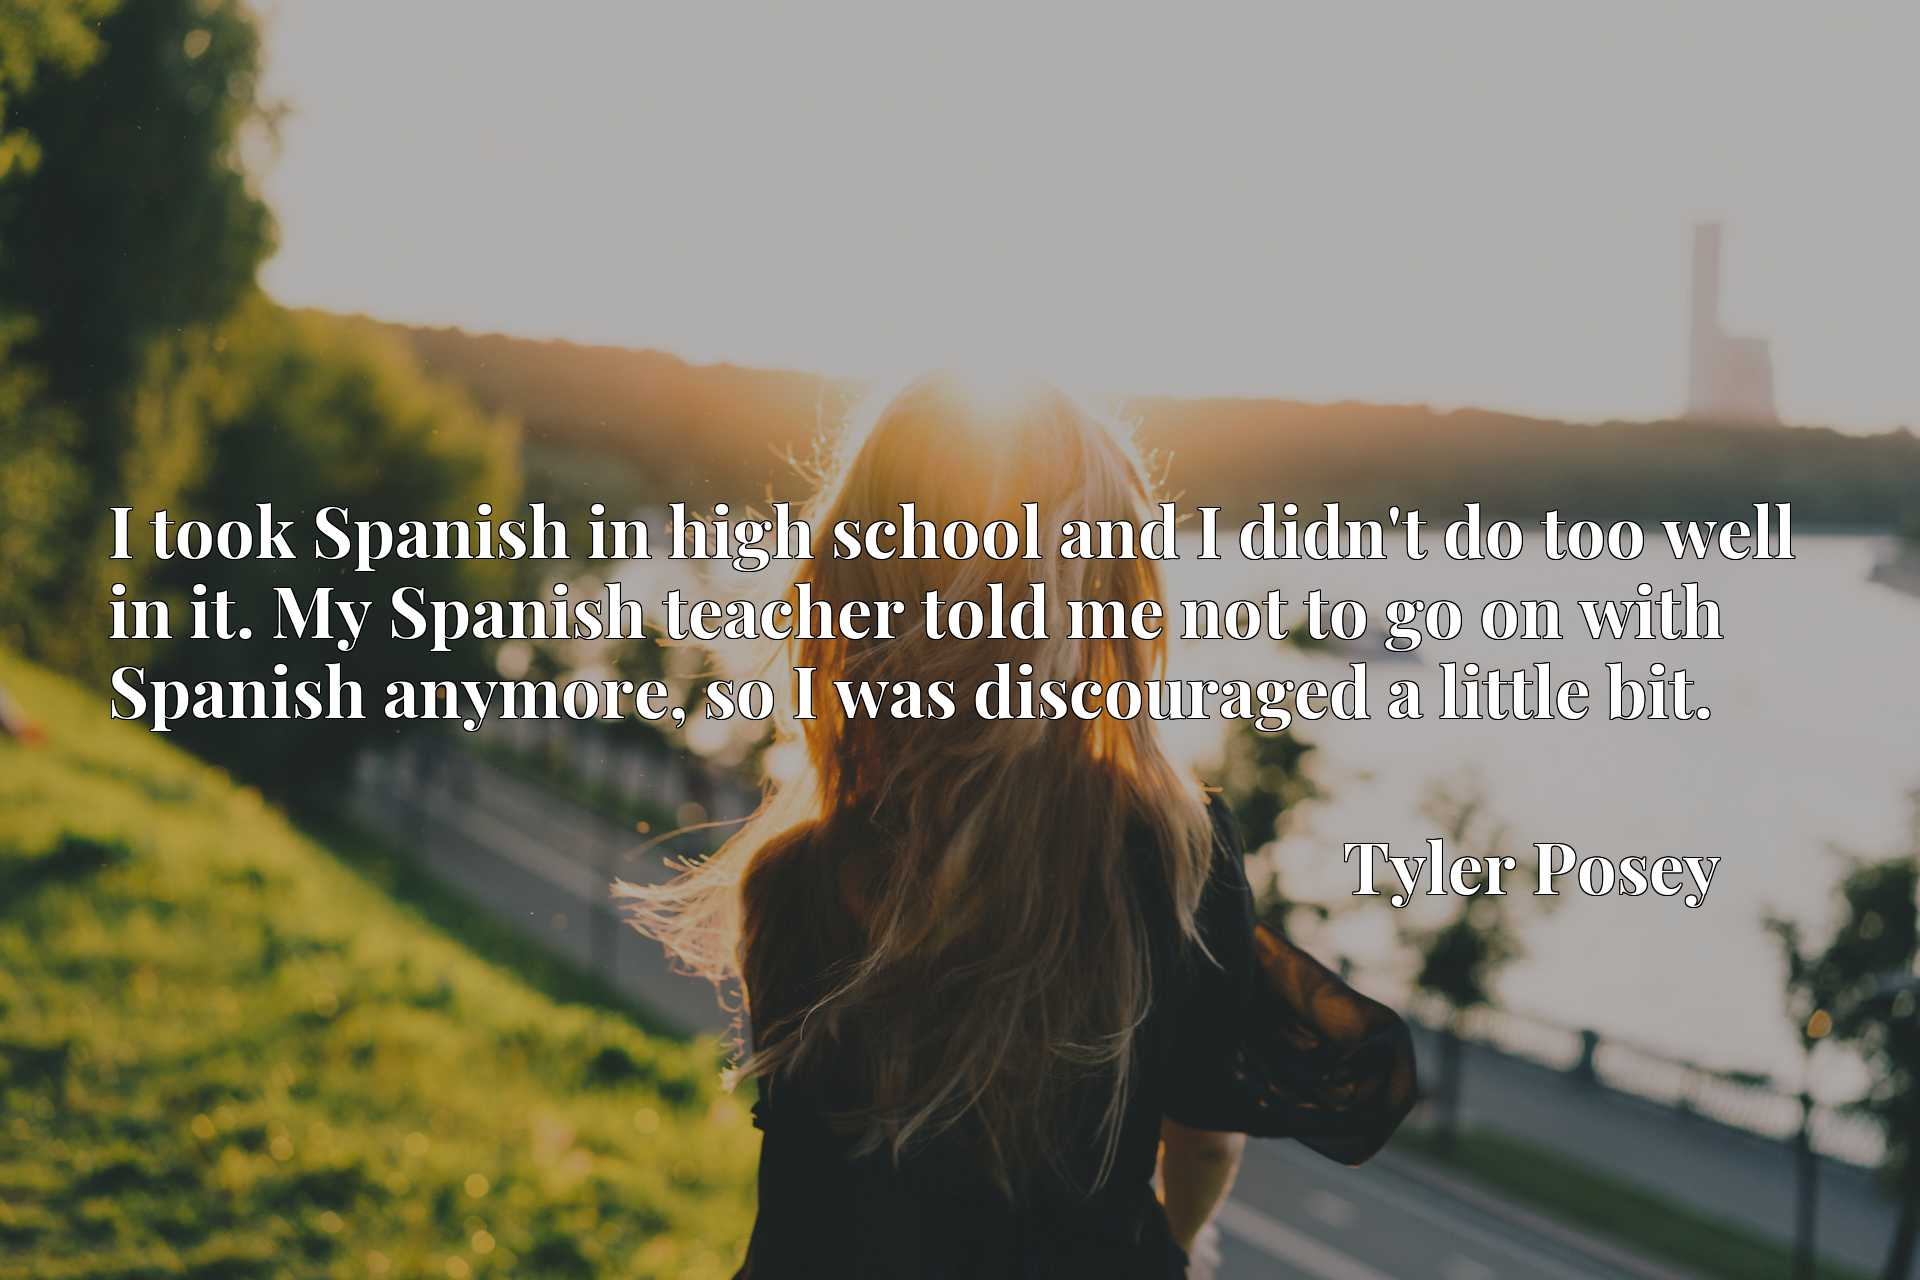 I took Spanish in high school and I didn't do too well in it. My Spanish teacher told me not to go on with Spanish anymore, so I was discouraged a little bit.